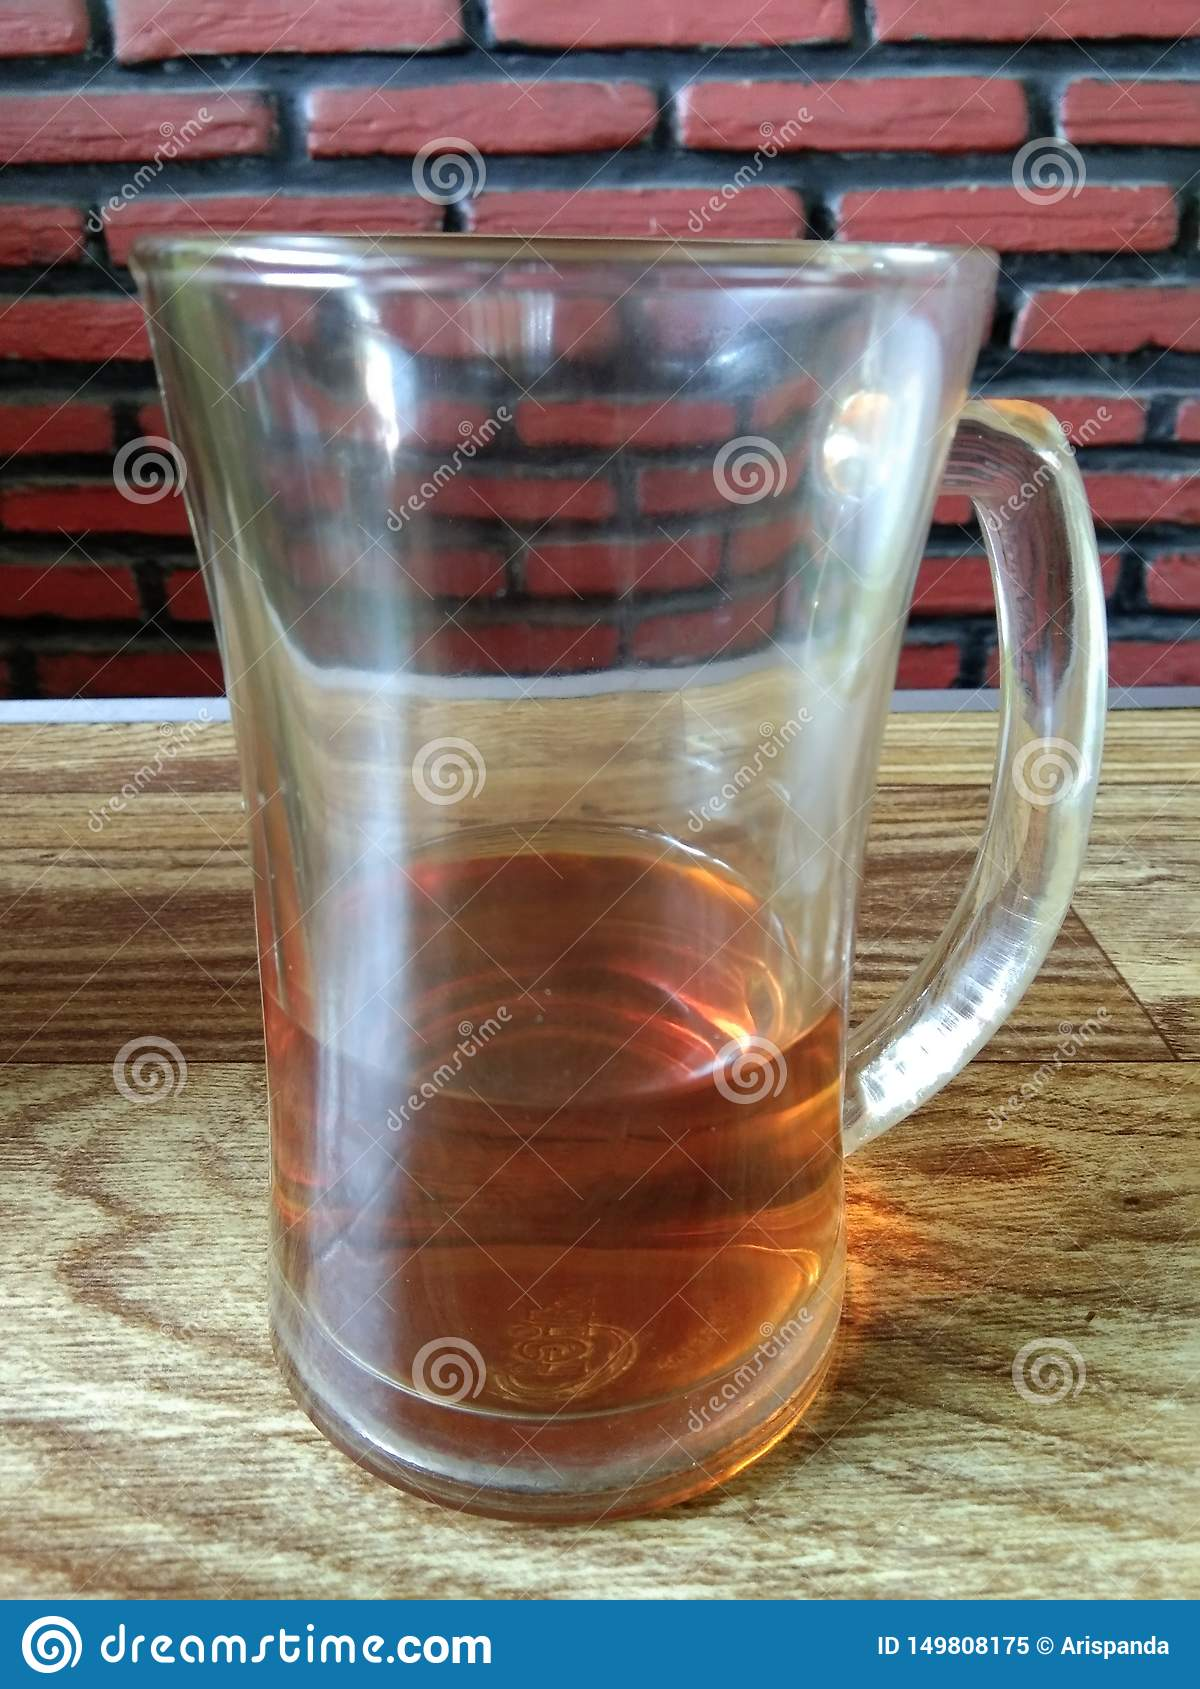 The remaining tea drinks in a glass